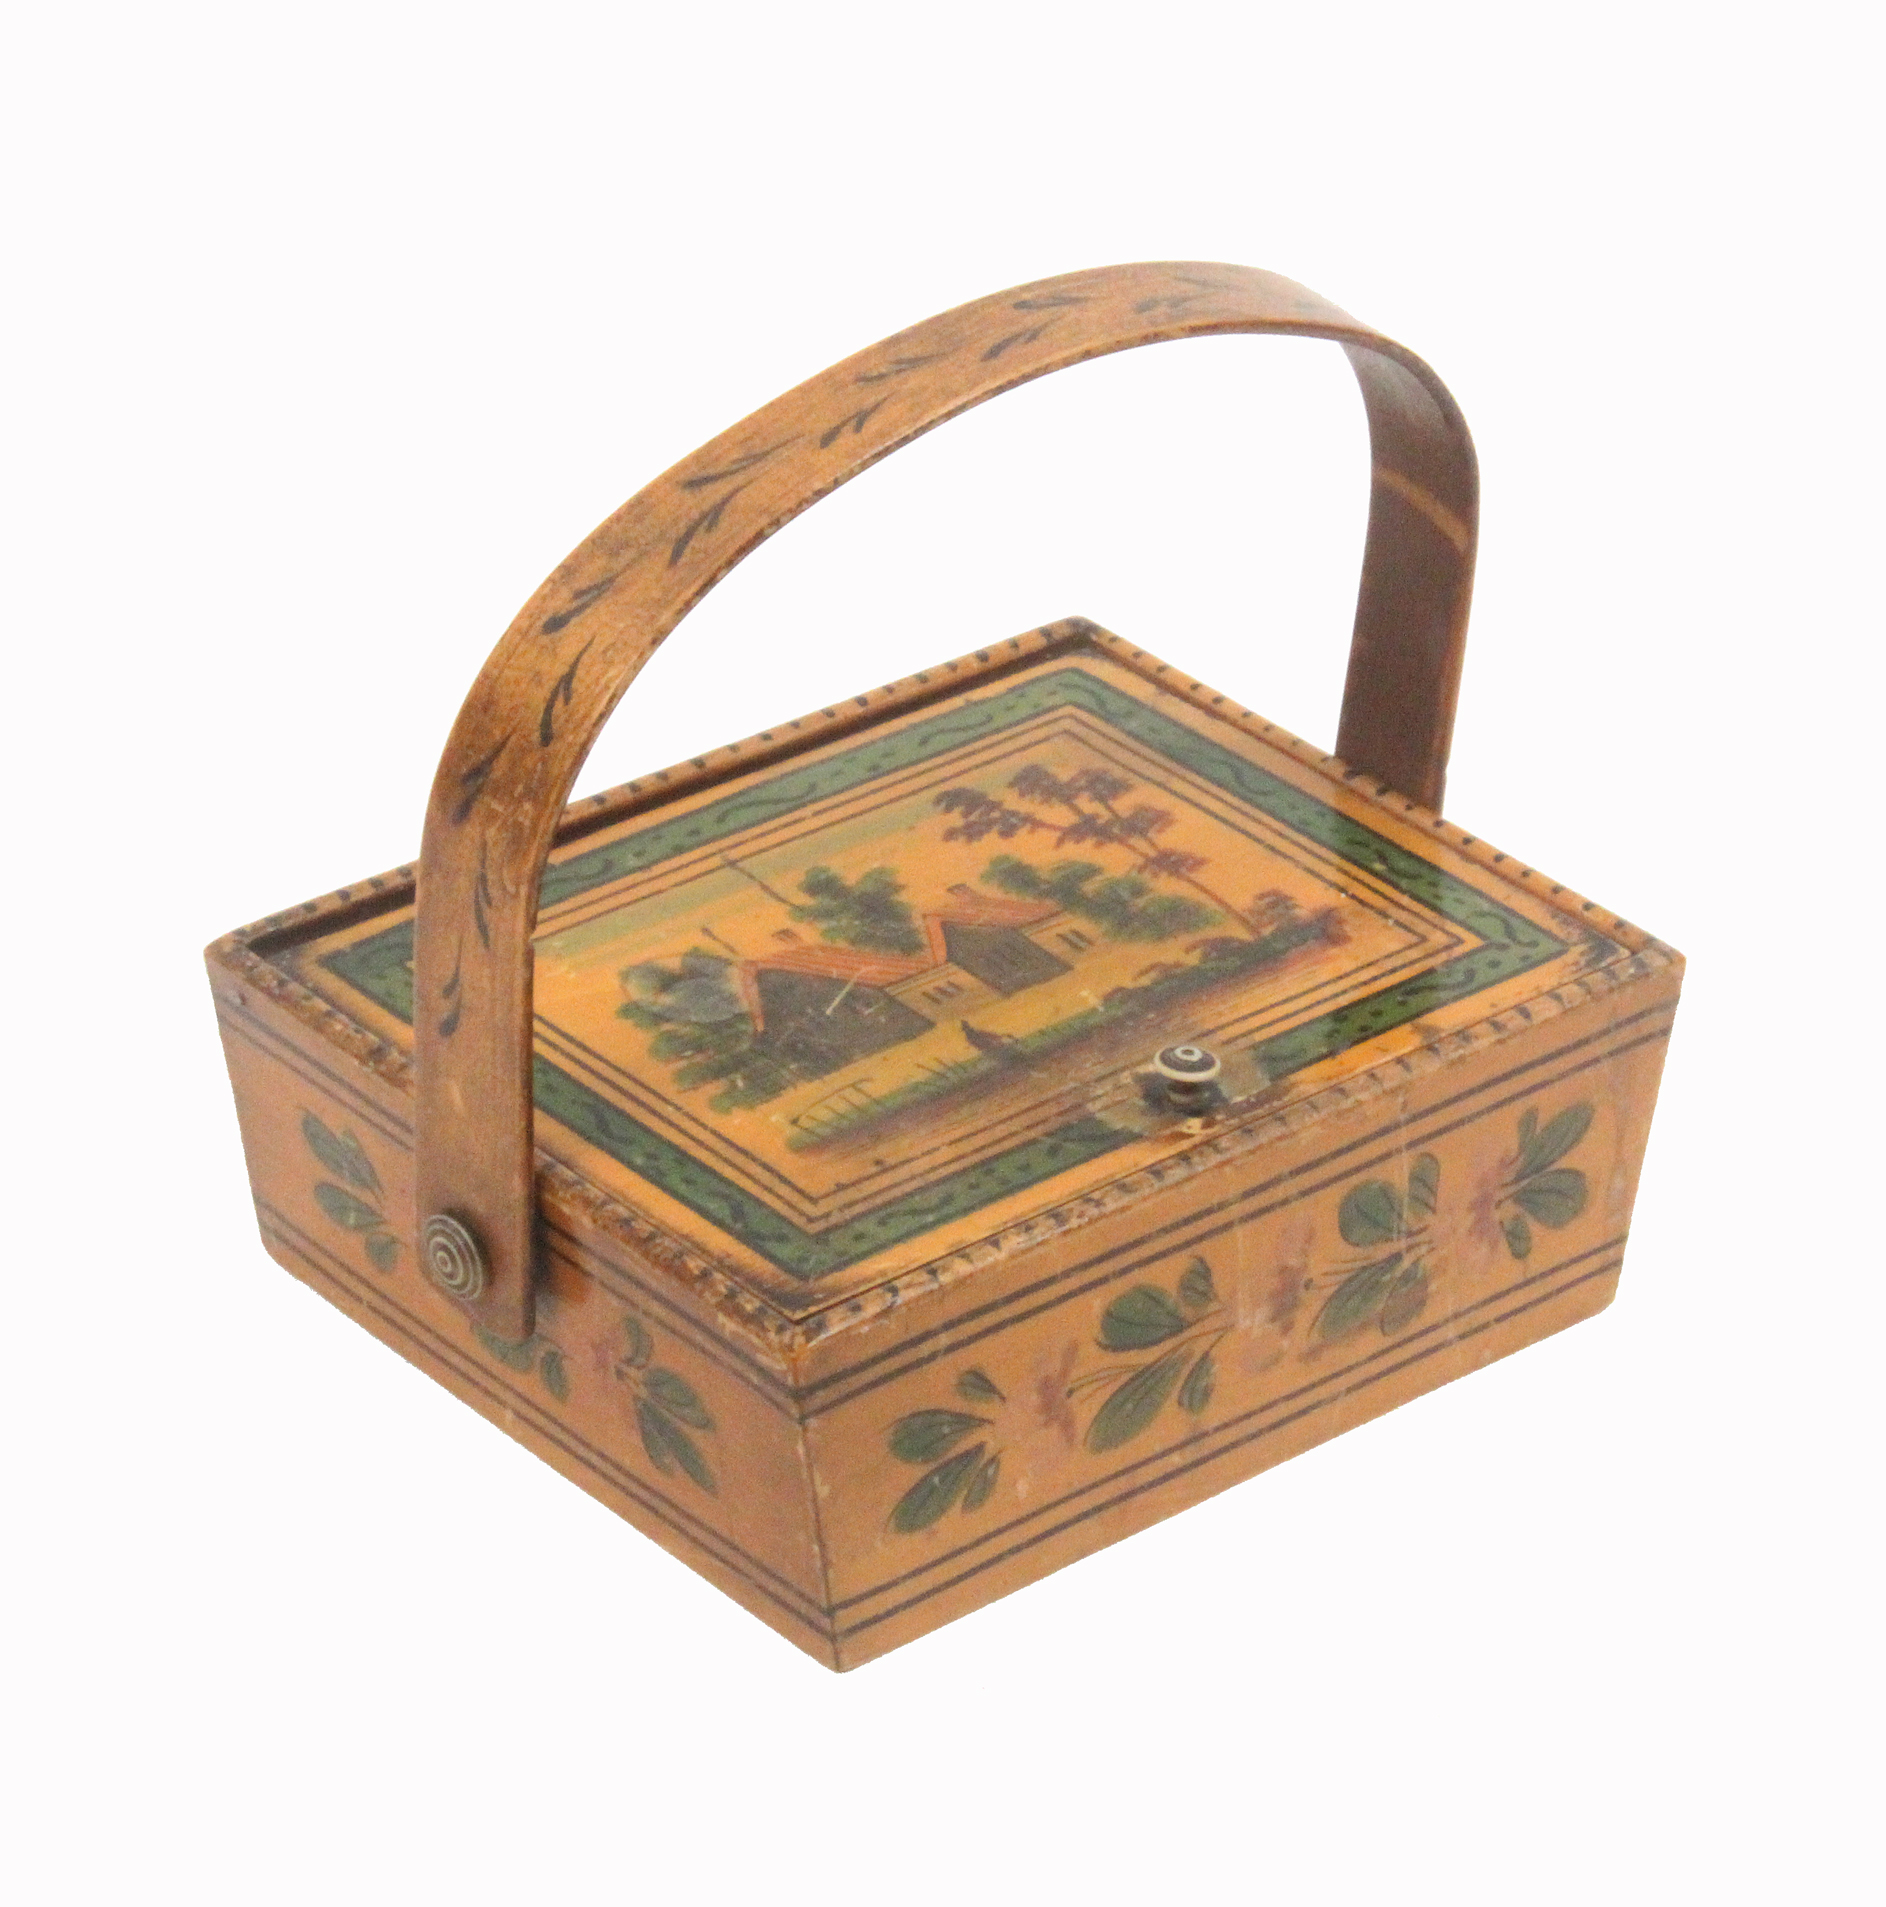 An early 19th Century whitewood sewing pannier in the Tunbridge style, the angled sides painted with